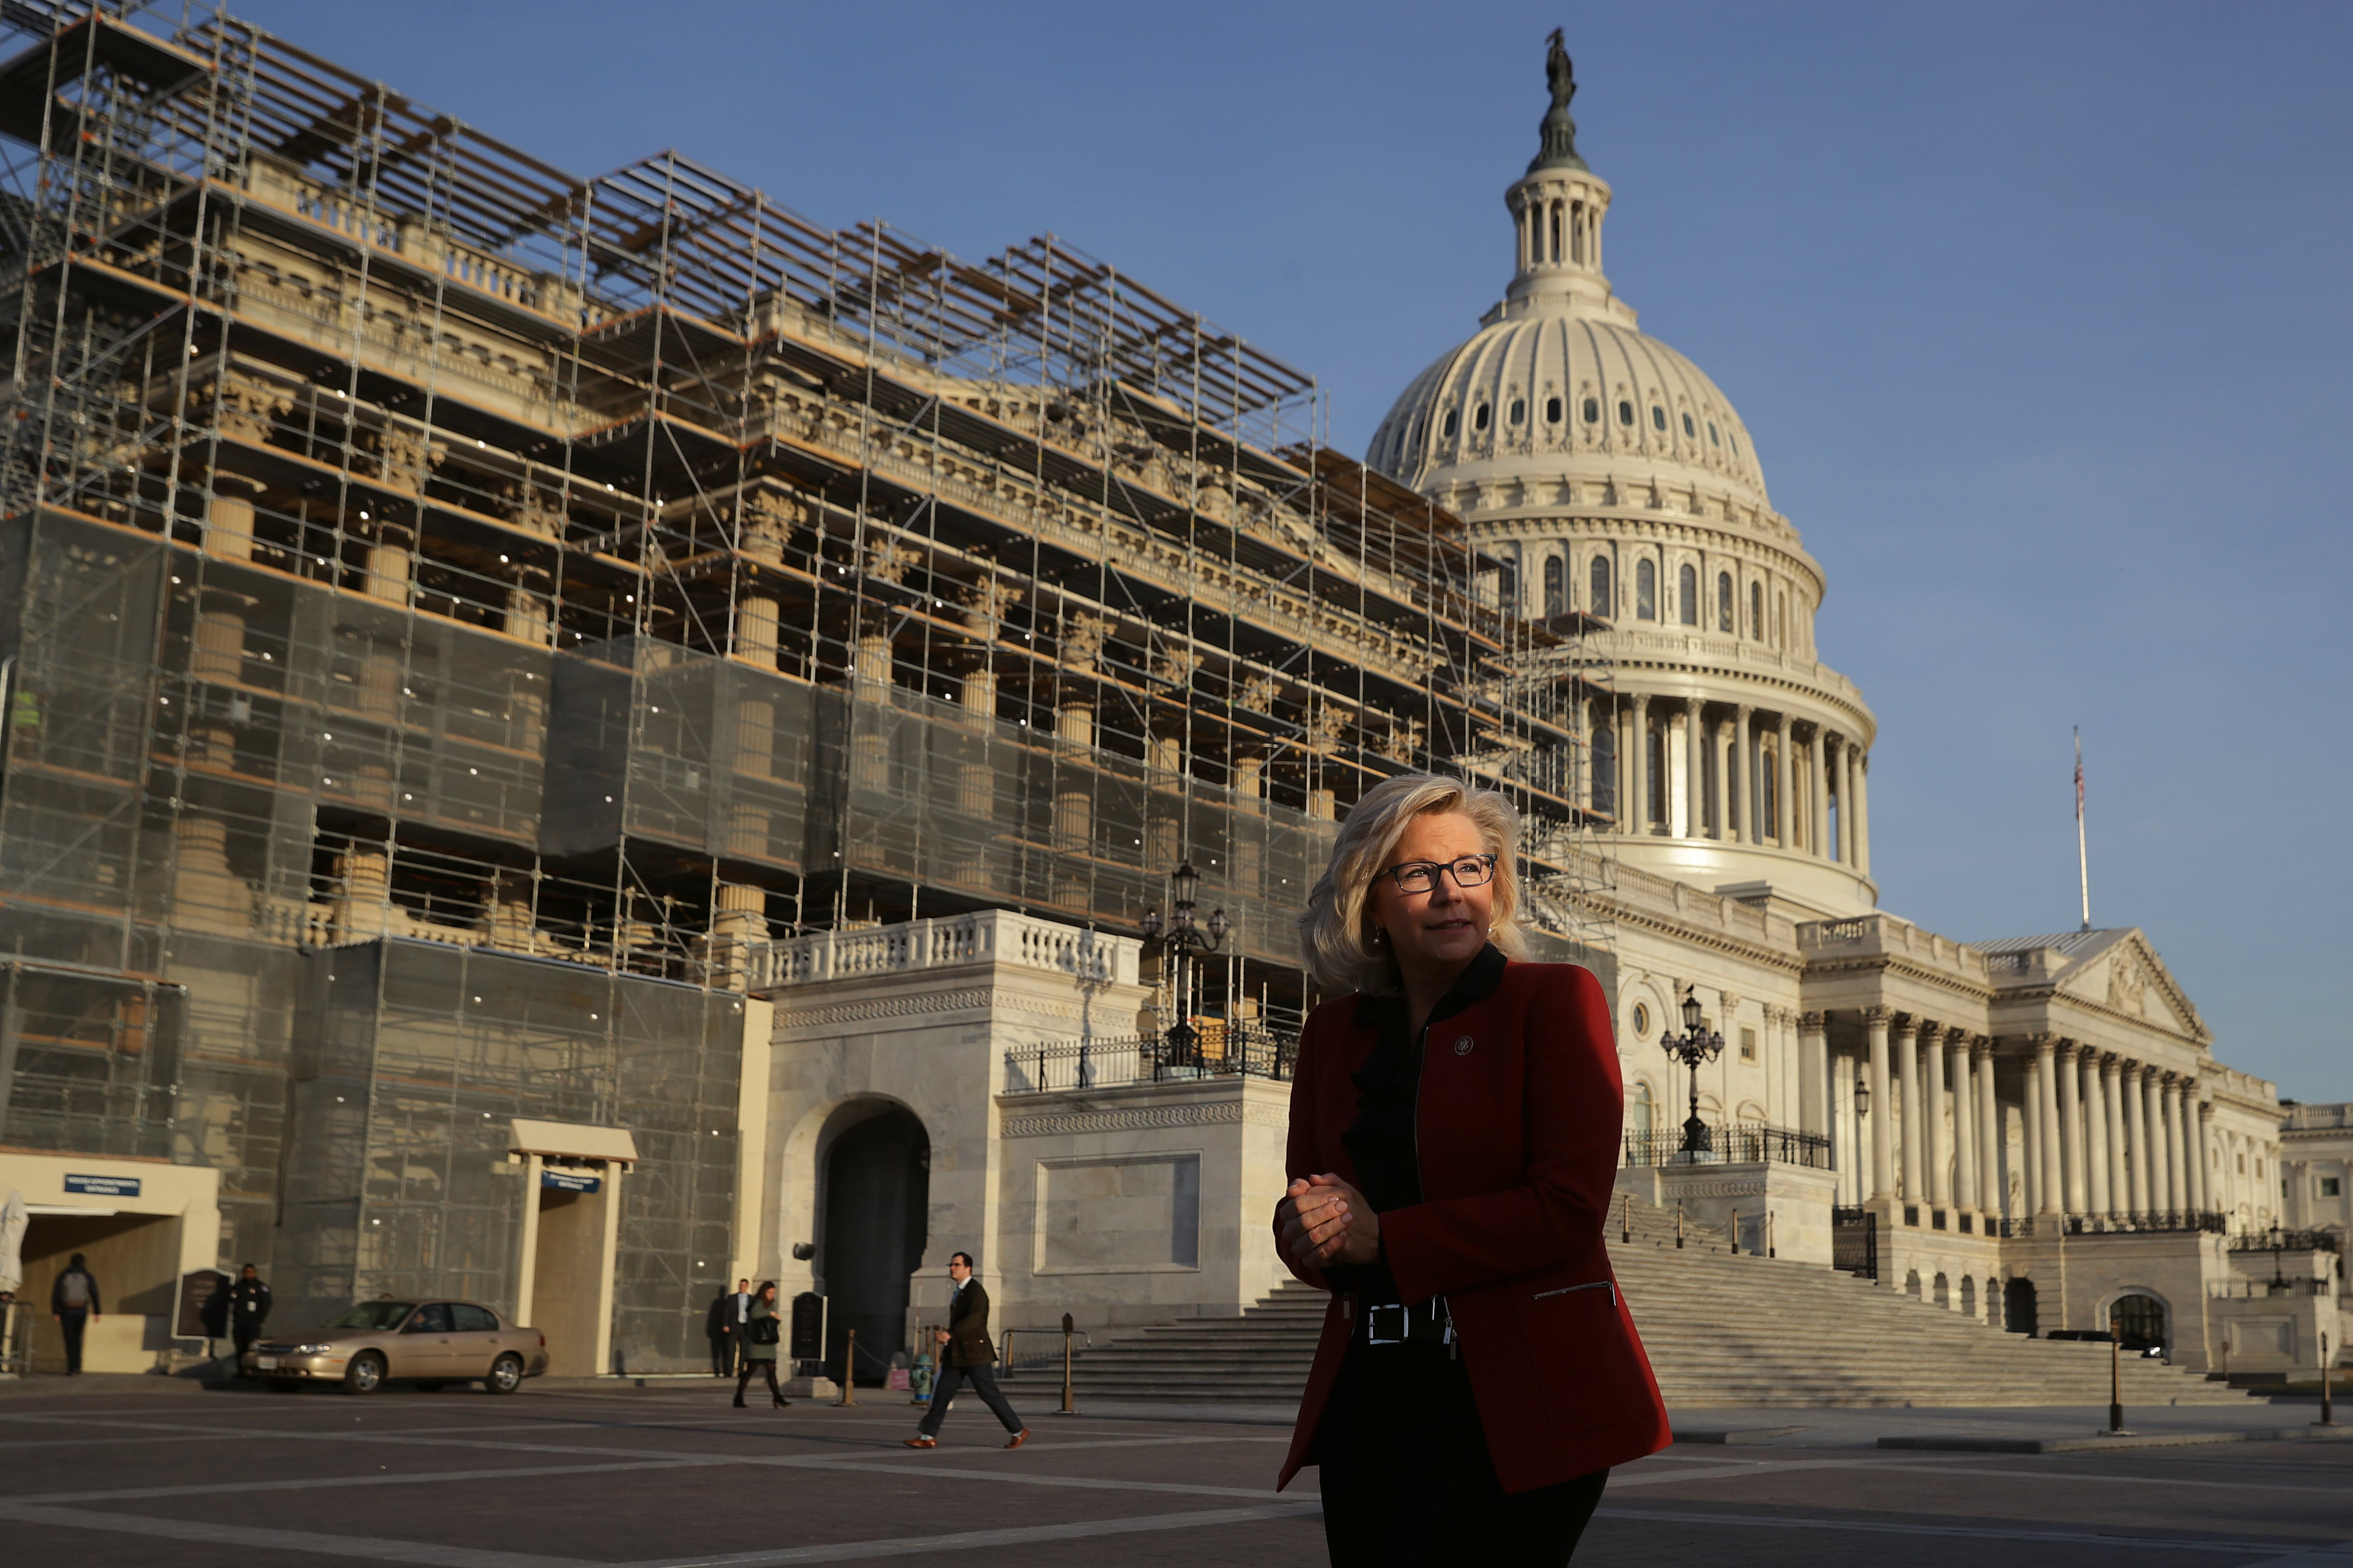 U.S. House Republican Conference Chair Liz Cheney prepares for a news conference with fellow Republicans and anti-abortion activists outside the U.S. Capitol. (Chip Somodevilla/Getty Images)